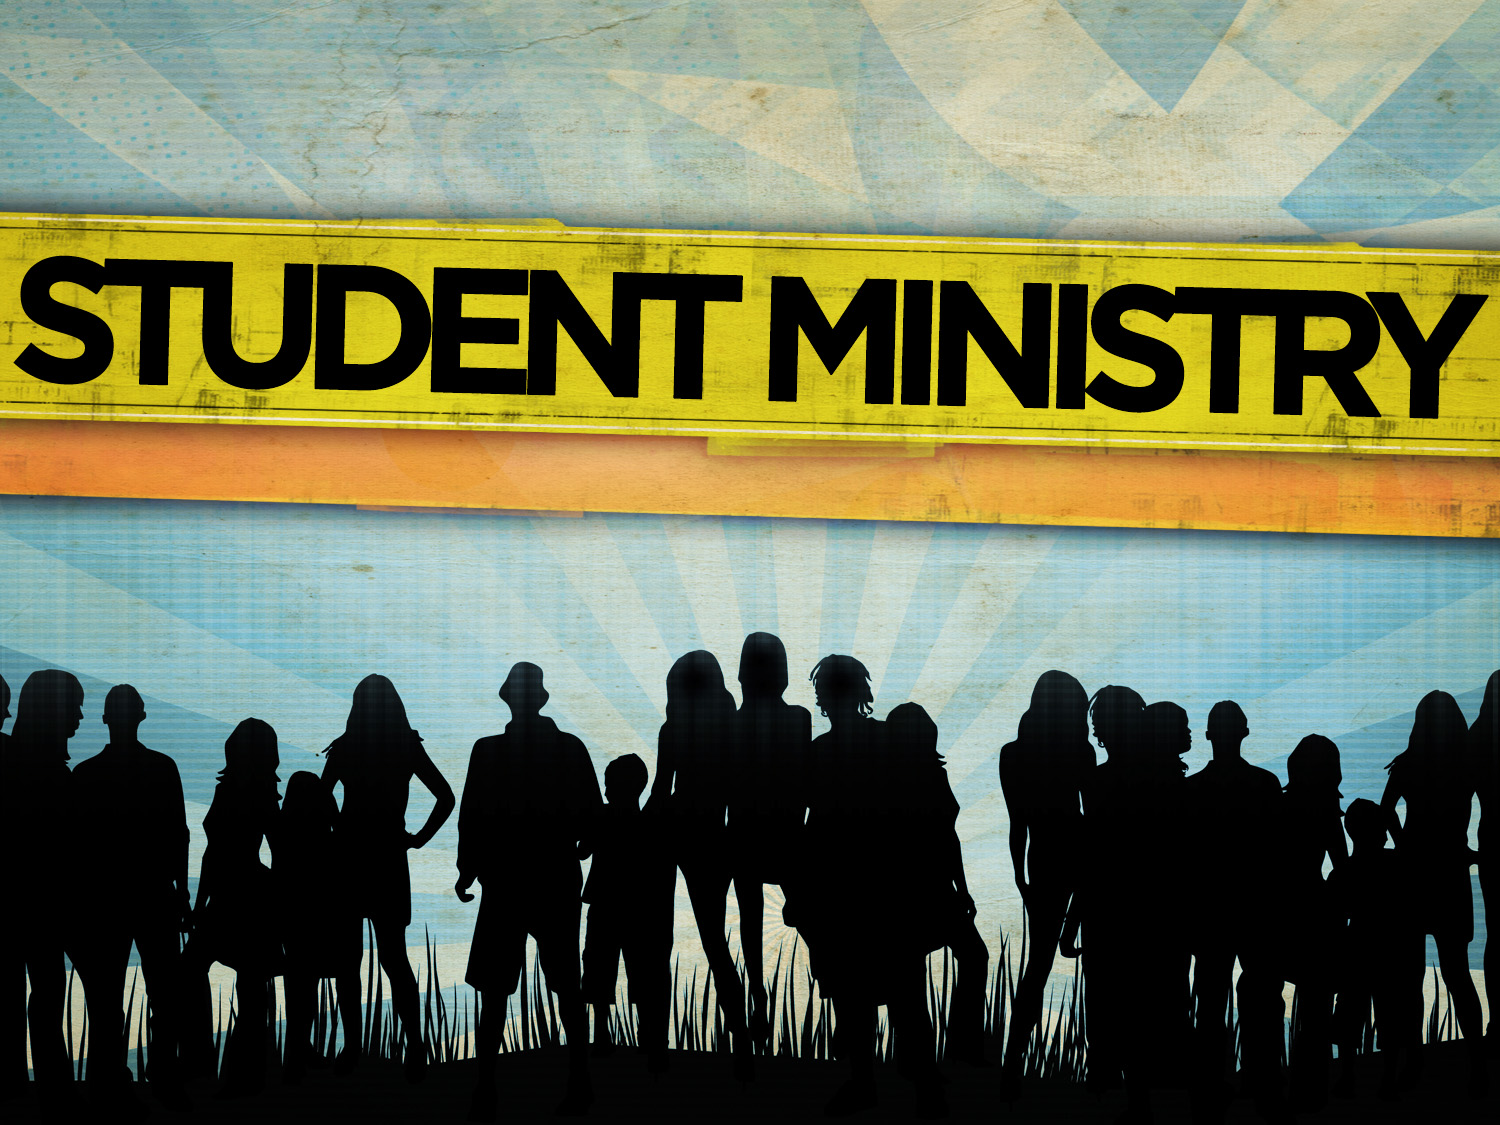 student ministry image